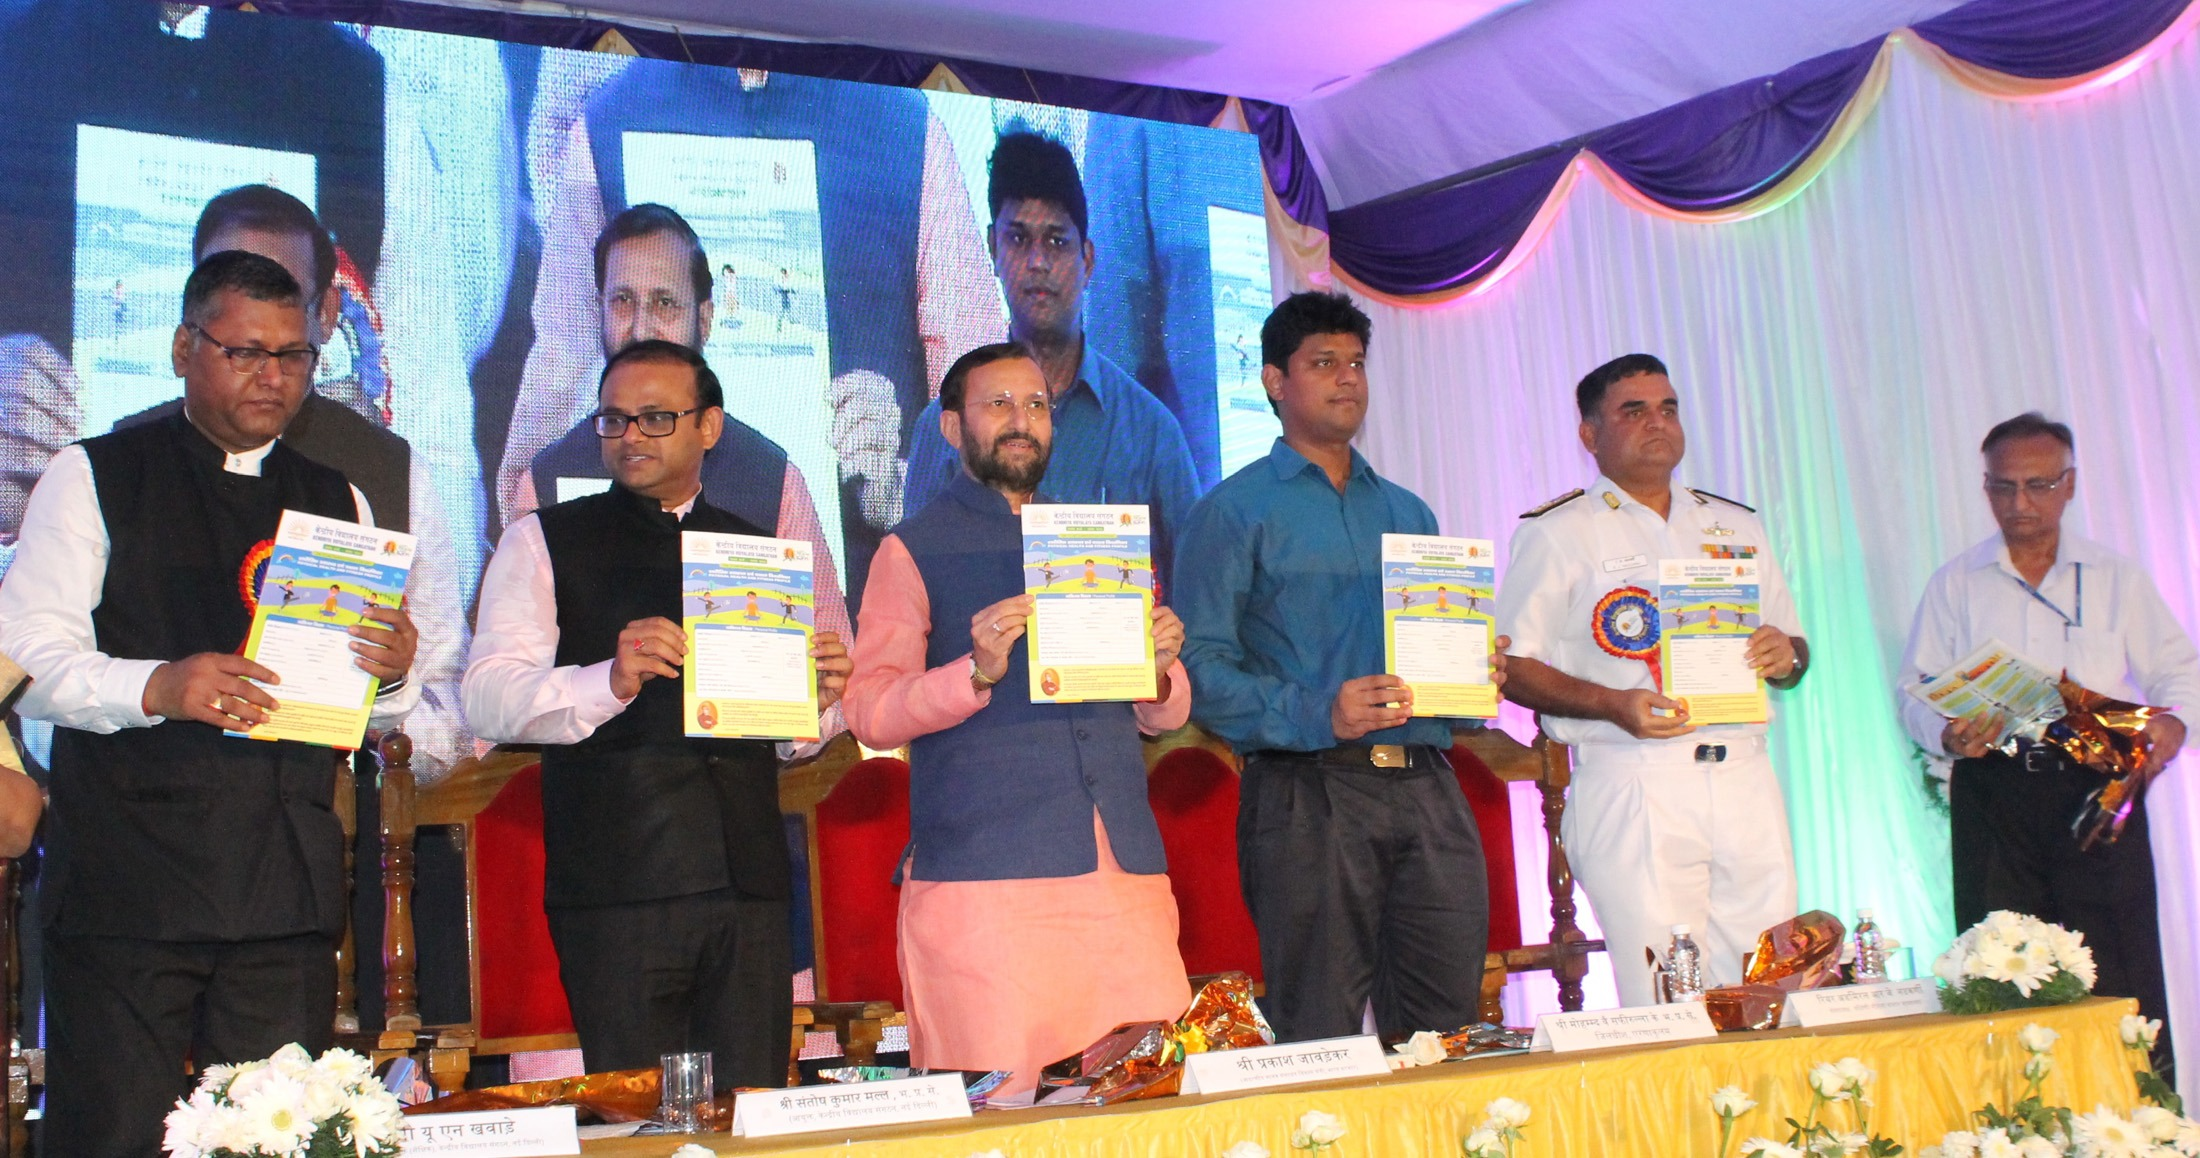 The Union Minister for Human Resource Development, Shri Prakash Javadekar launching the Physical Health and Fitness Profile Card, as part of Swasth Bachche, Swasth Bharath Programme, in Kochi on August 21, 2017.